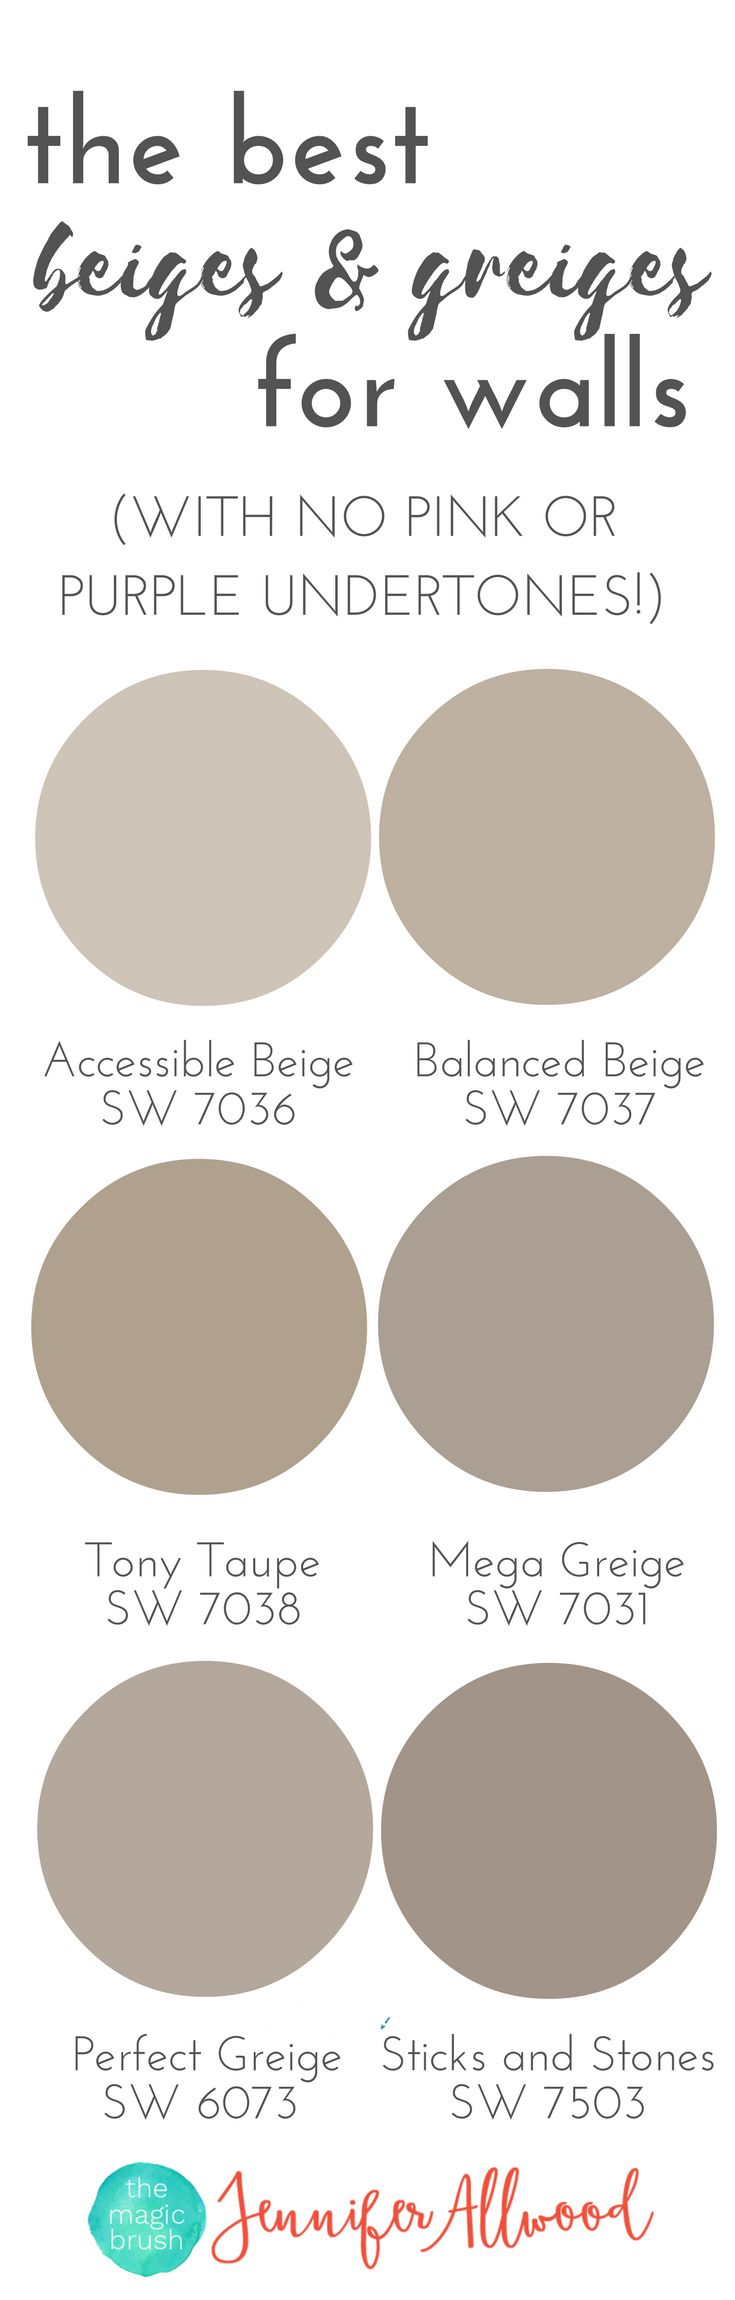 25 Best Ideas About Balanced Beige On Pinterest Beige Wall Paints Beige Wall Colors And